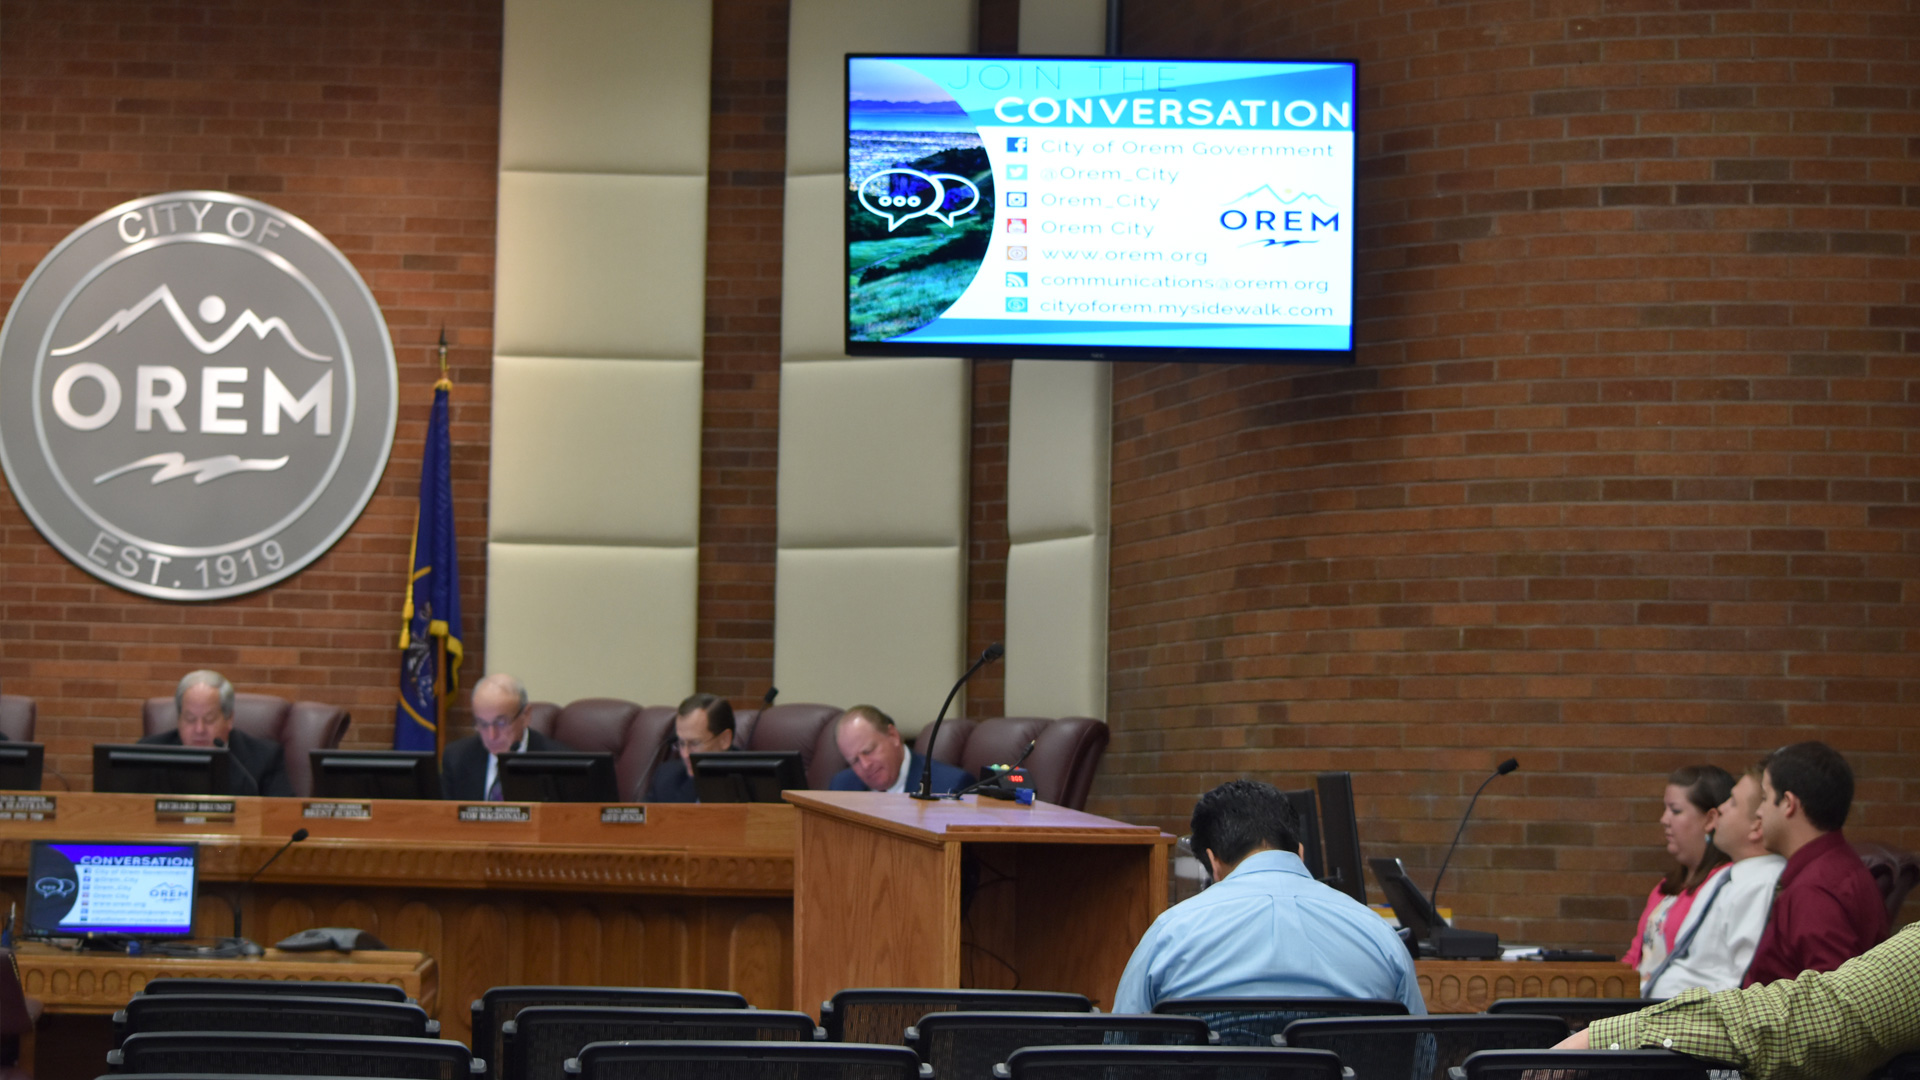 Residents attending the council meeting in person that is also made available to them live through webcasts by the city and VOD Using Monarch HD and PrimeGov software.